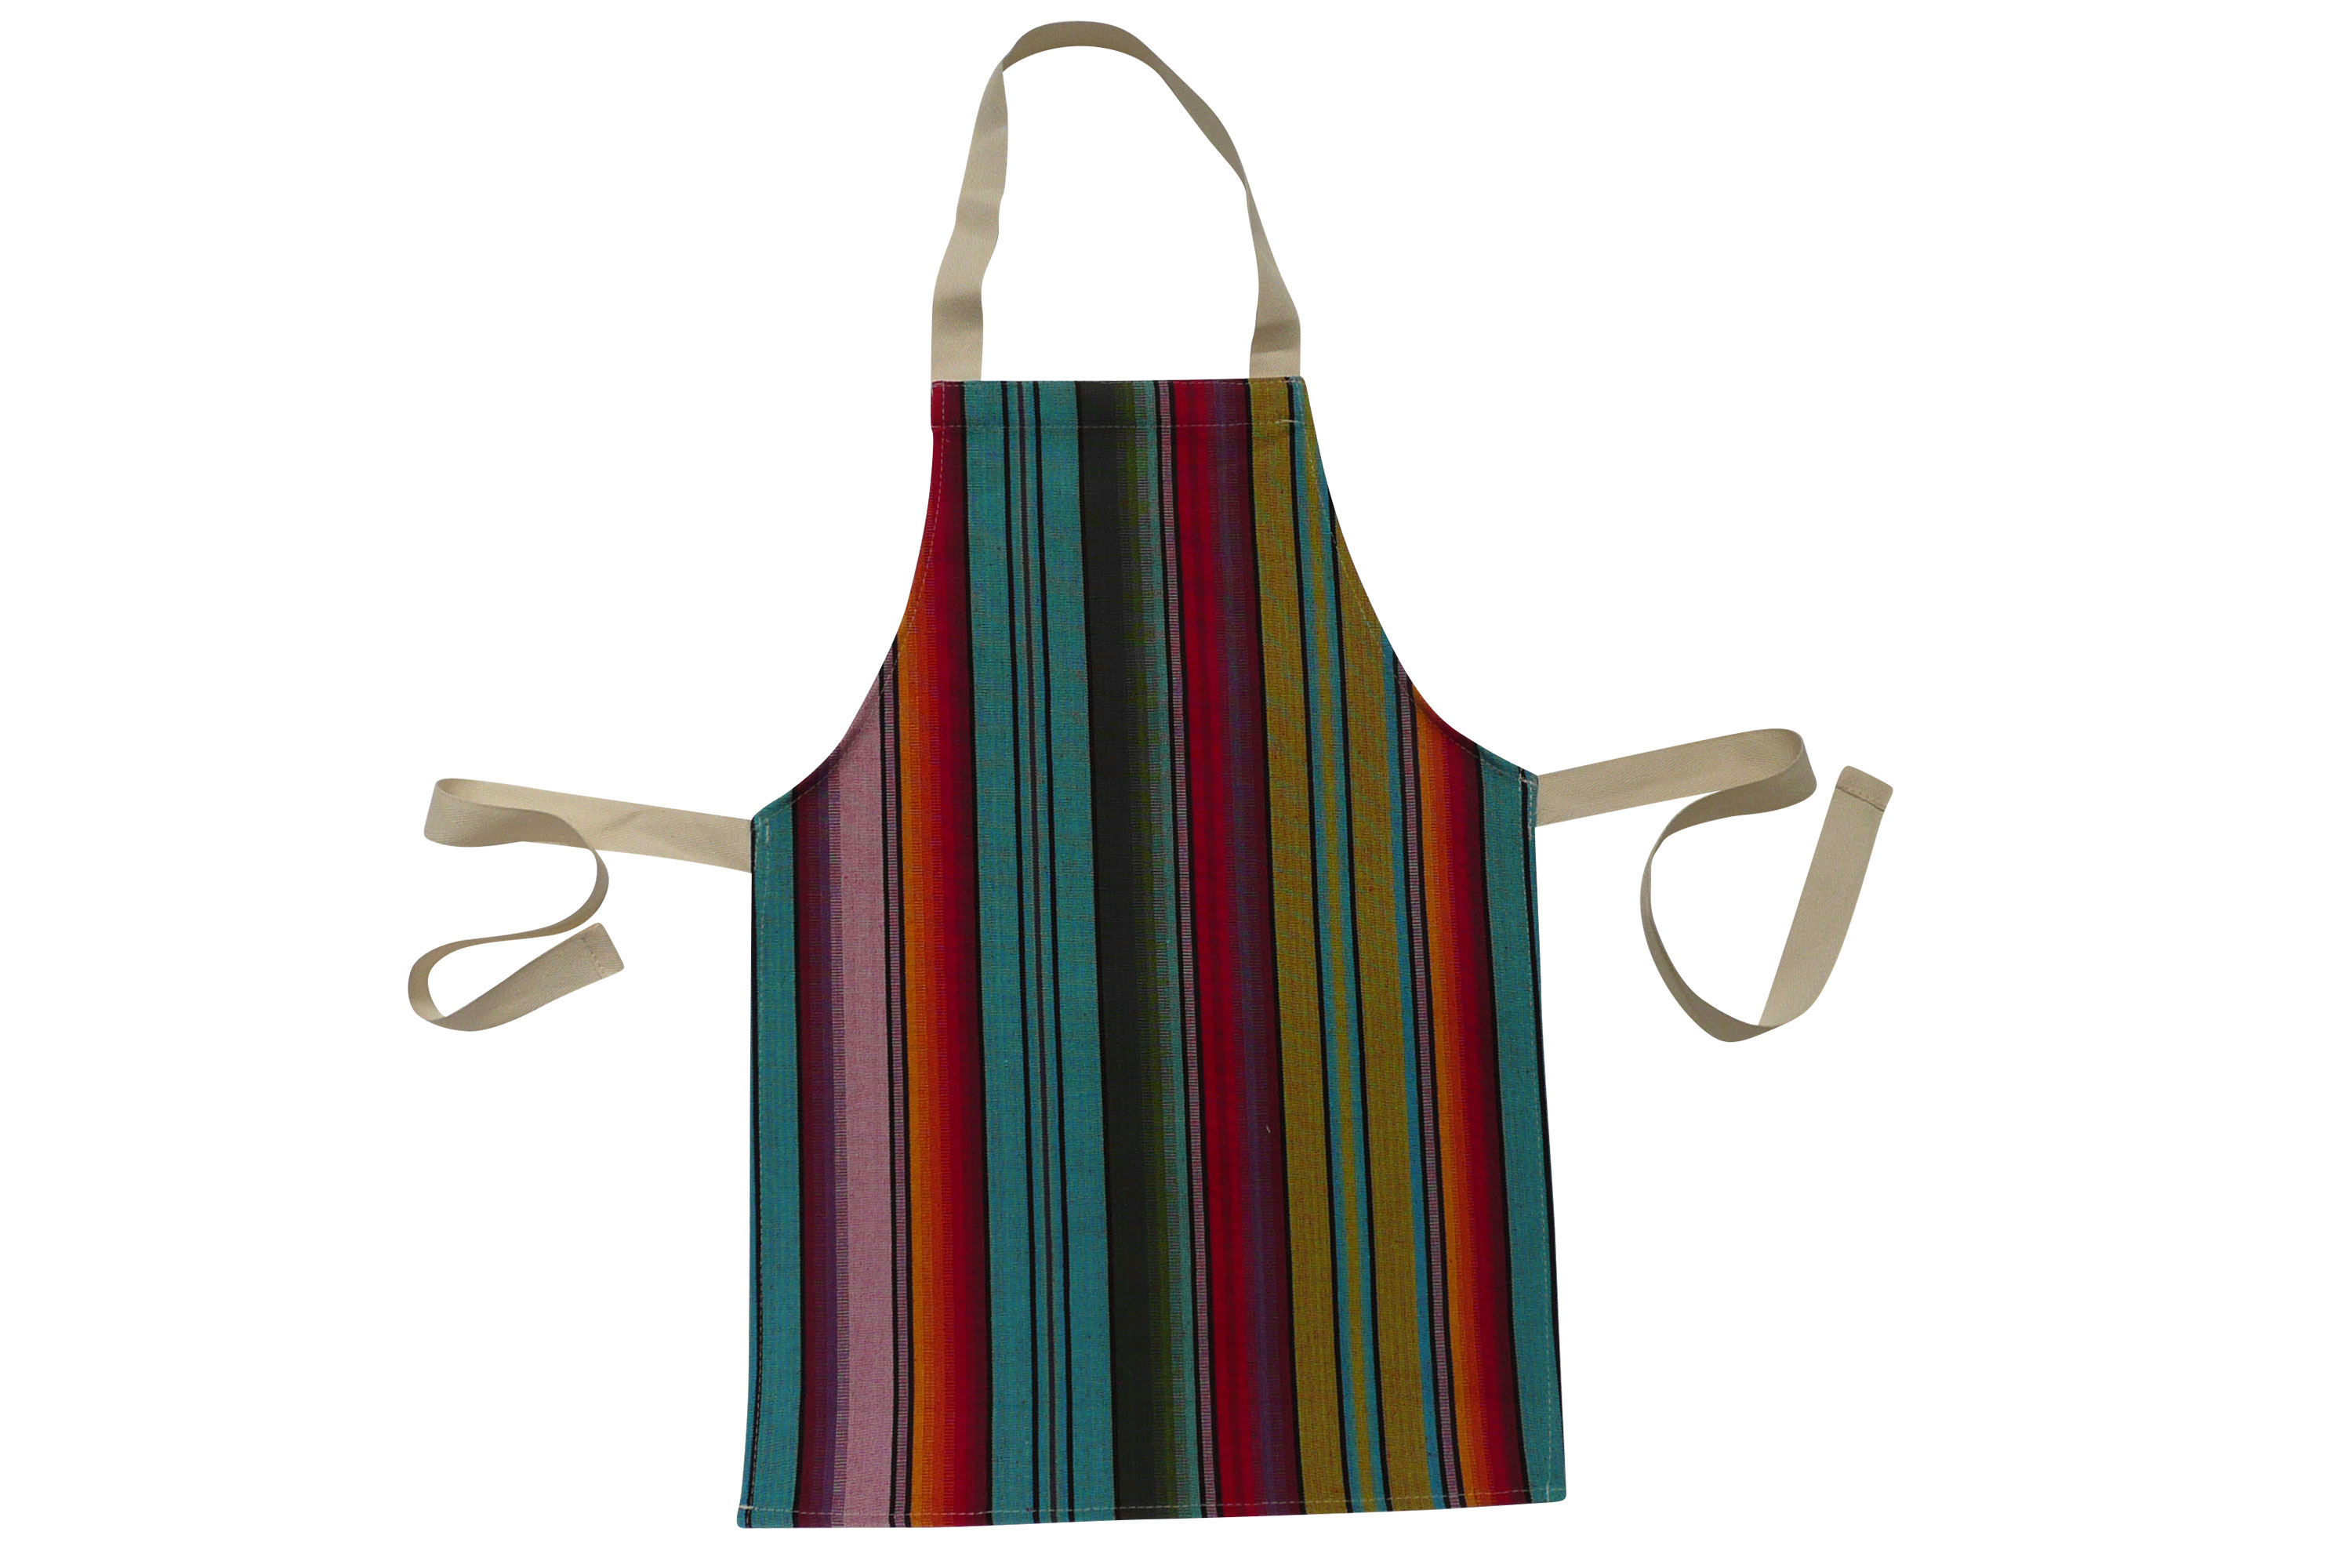 Blue Toddlers Aprons - Striped Aprons For Small Children Blue  Green  Orange  Stripes